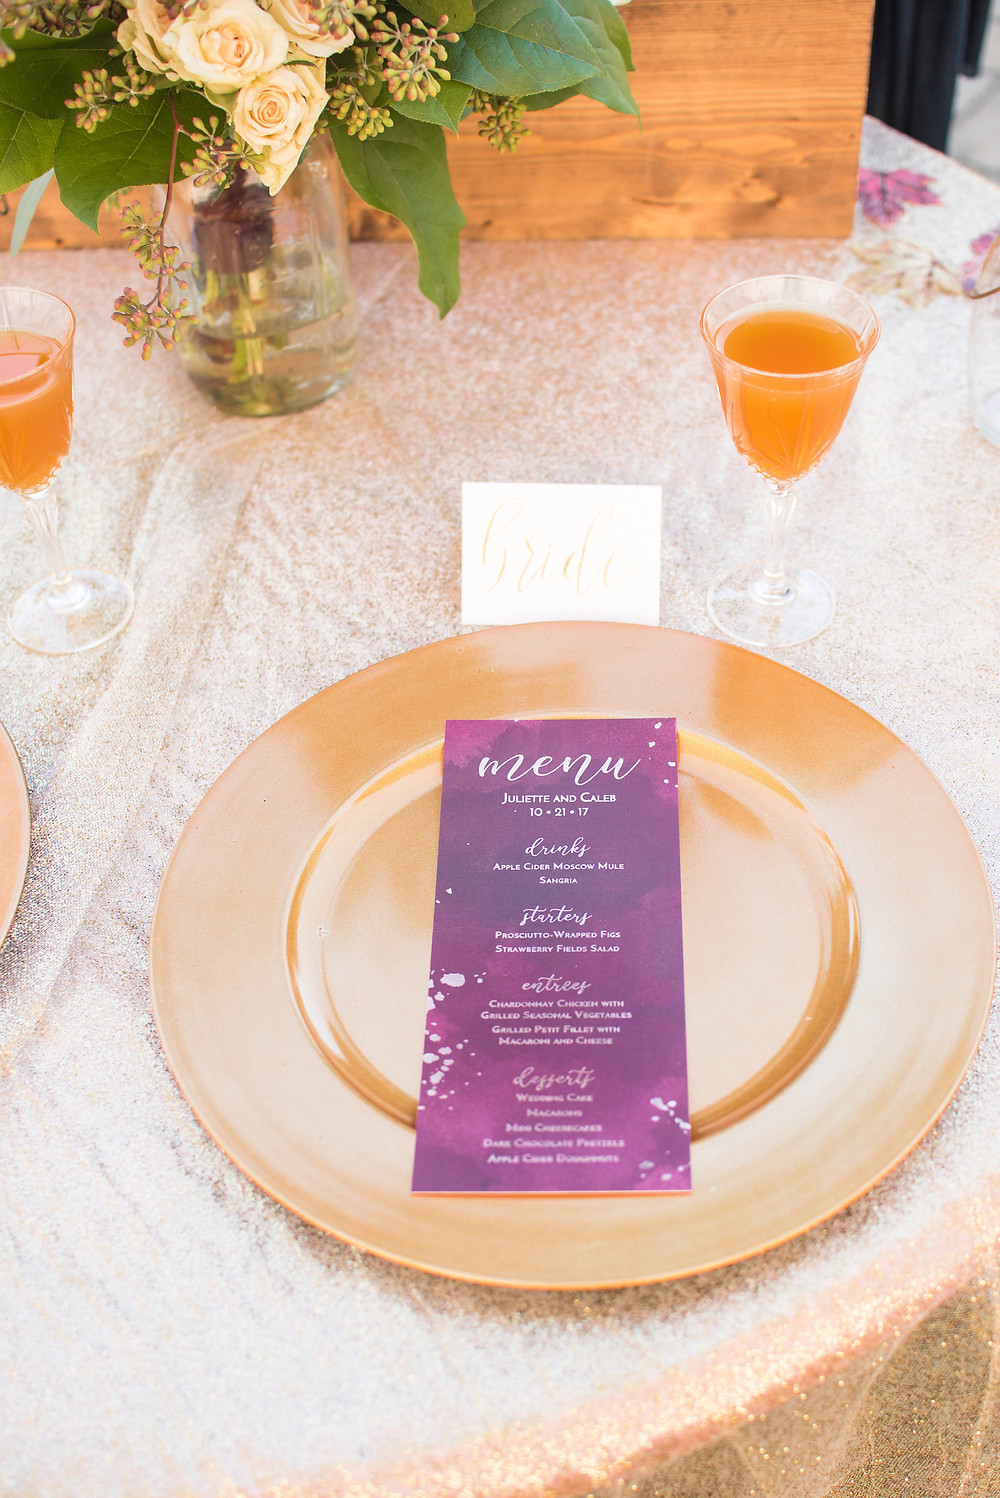 A place setting with a charger, menu, bouquet, and glass of sangria.